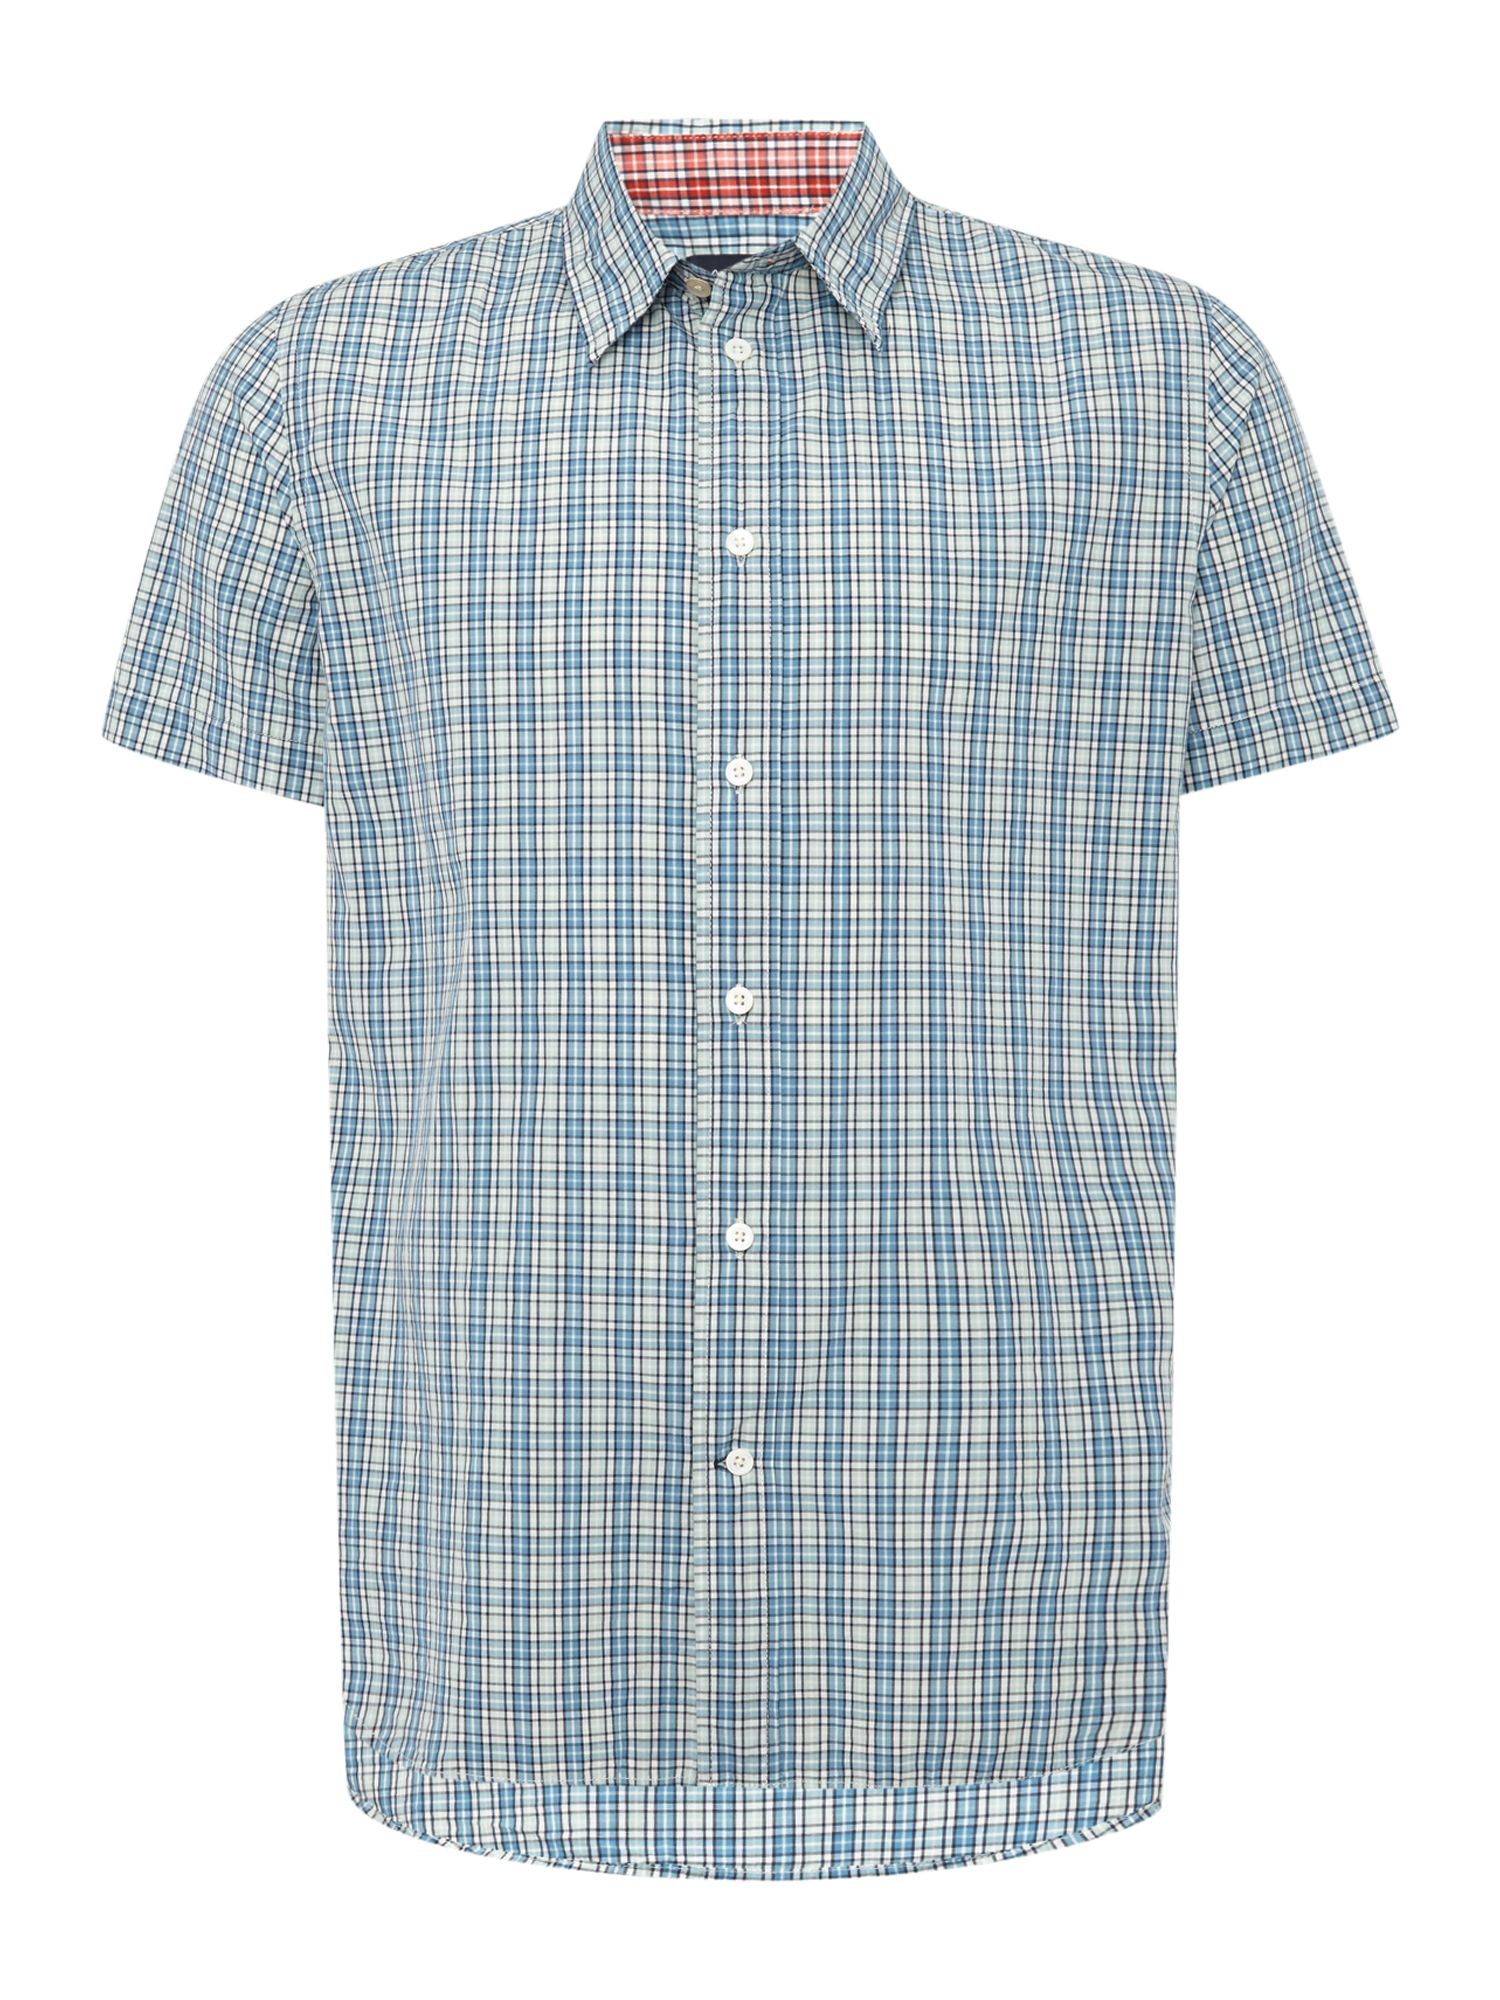 Paul Smith Jeans Men's Paul Smith Jeans Short sleeve small check print shirt, Blue